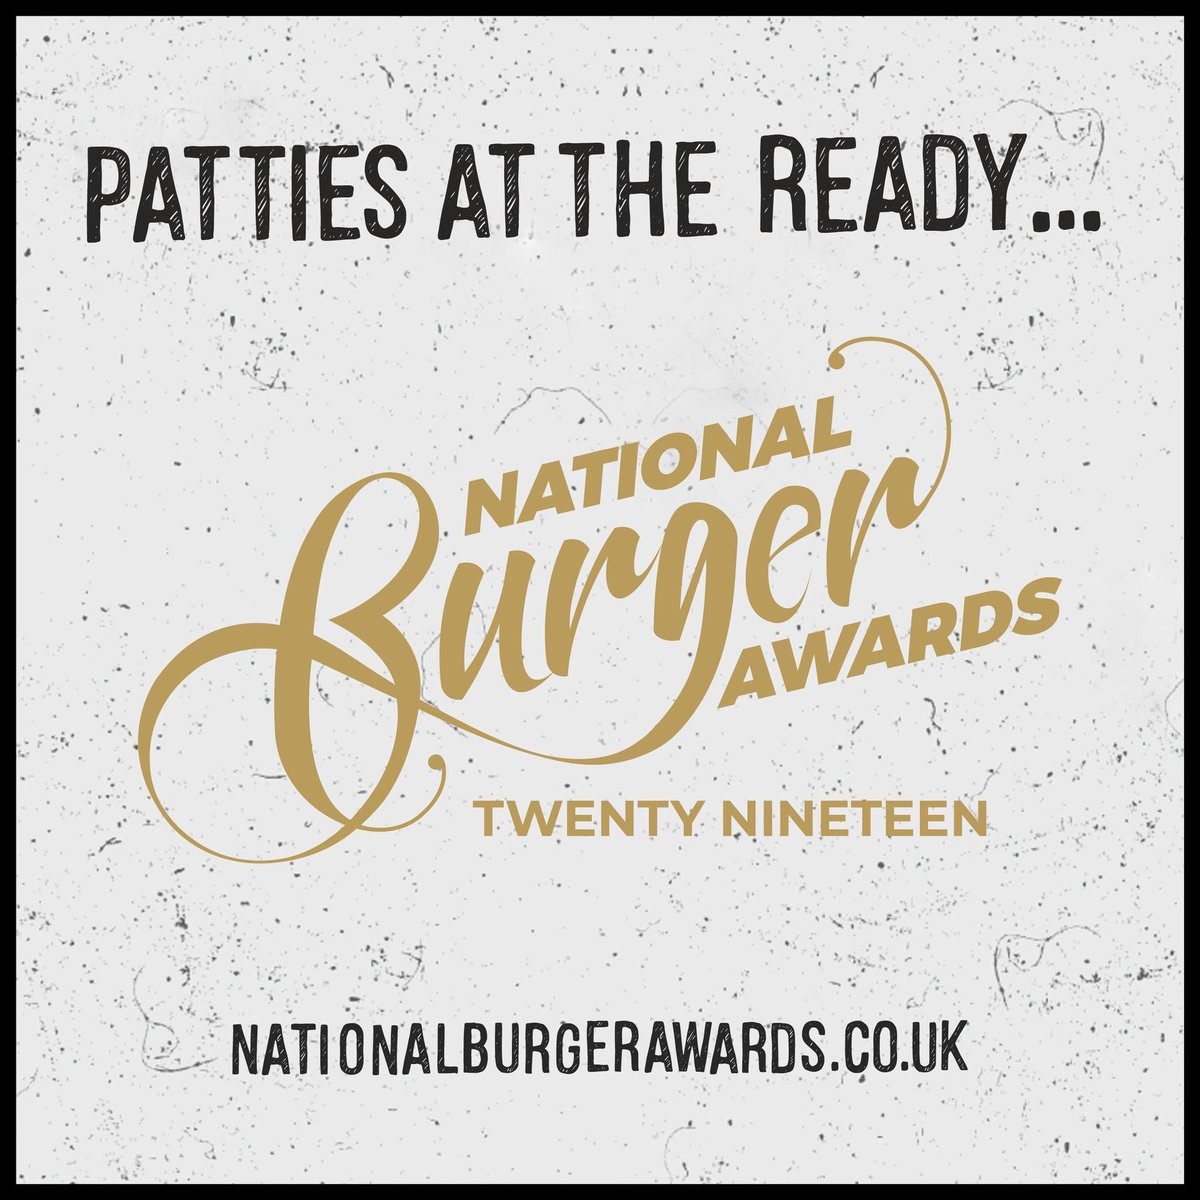 Good luck today to the 16 finalists in the live cook off @CasualDiningMag @PubandBarMag #NationalBurgerAwards @H2Opublishing I shall see your talent in action later